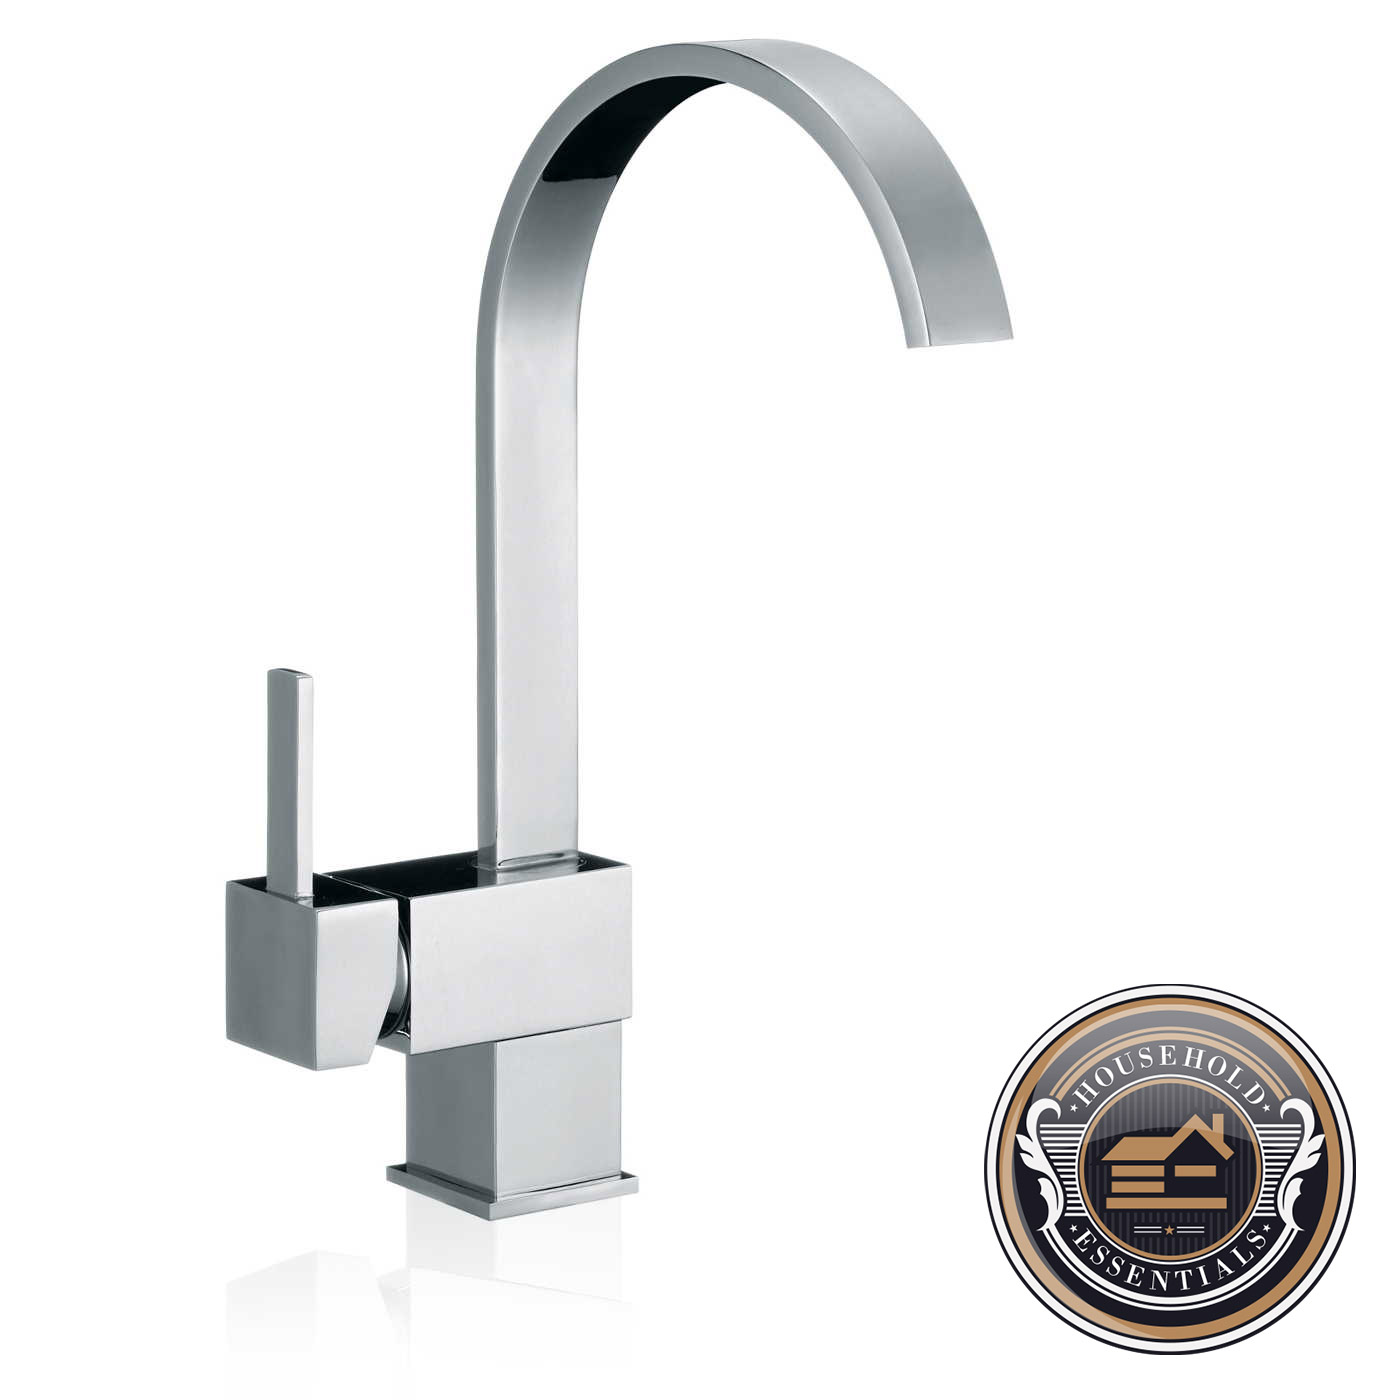 13 modern kitchen bathroom sink faucet one hole handle for Modern sinks and faucets